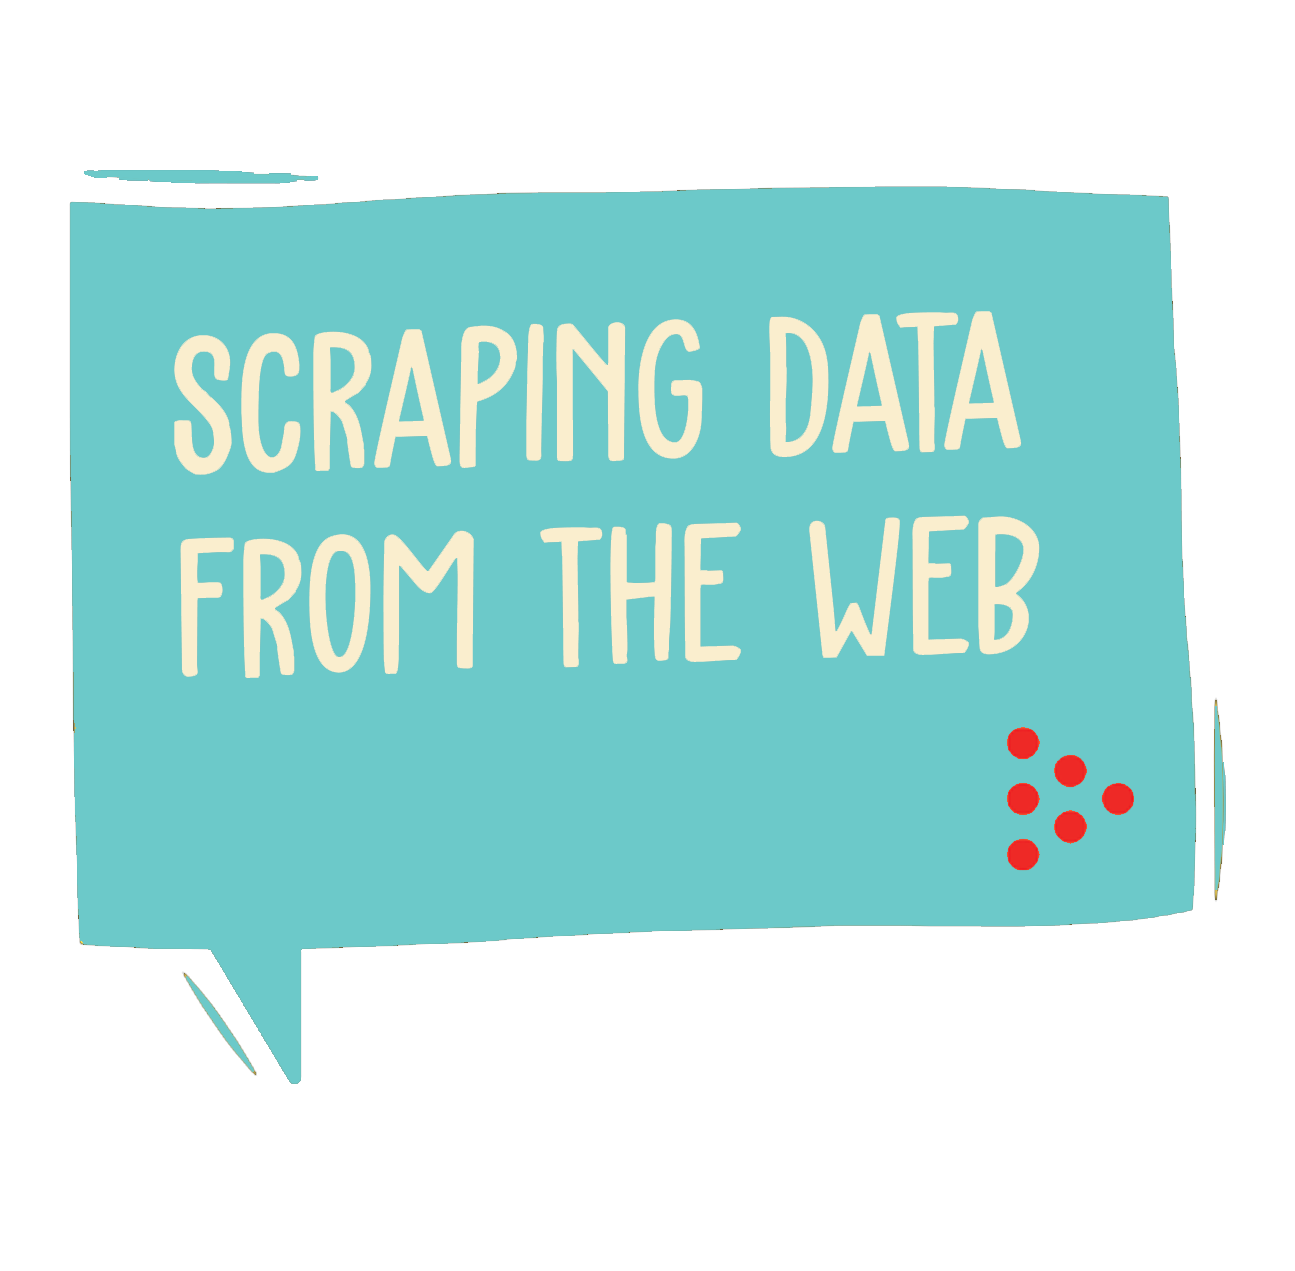 Scraping Data From The Web